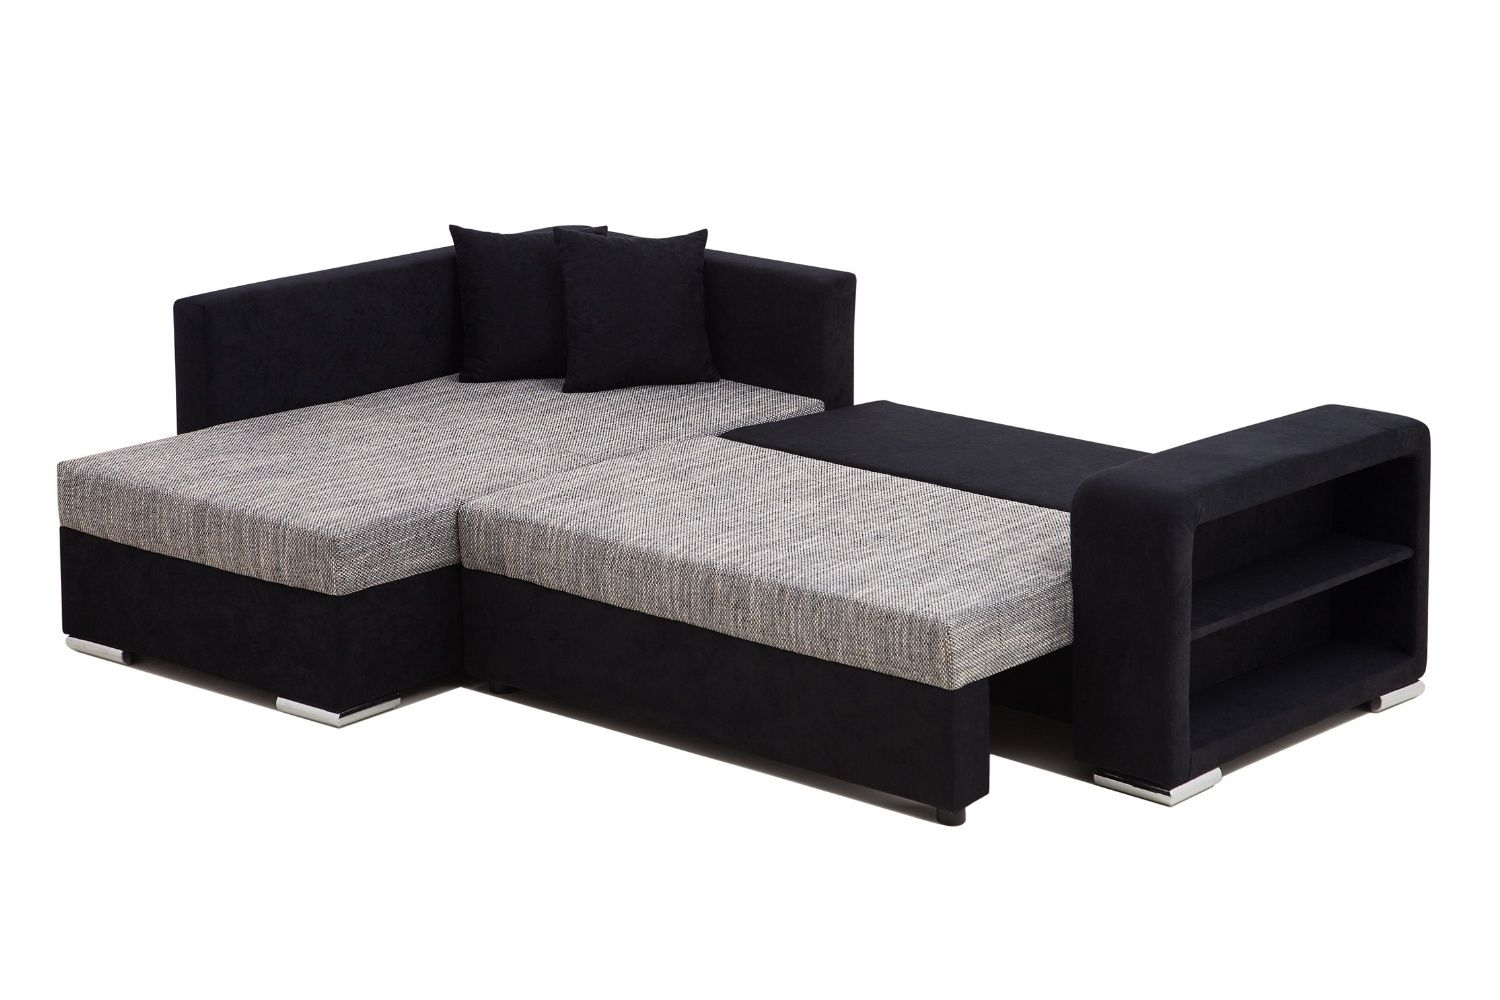 Canape lit tissu convertible hst cpelit hst osk st vente for Canapes lits convertibles